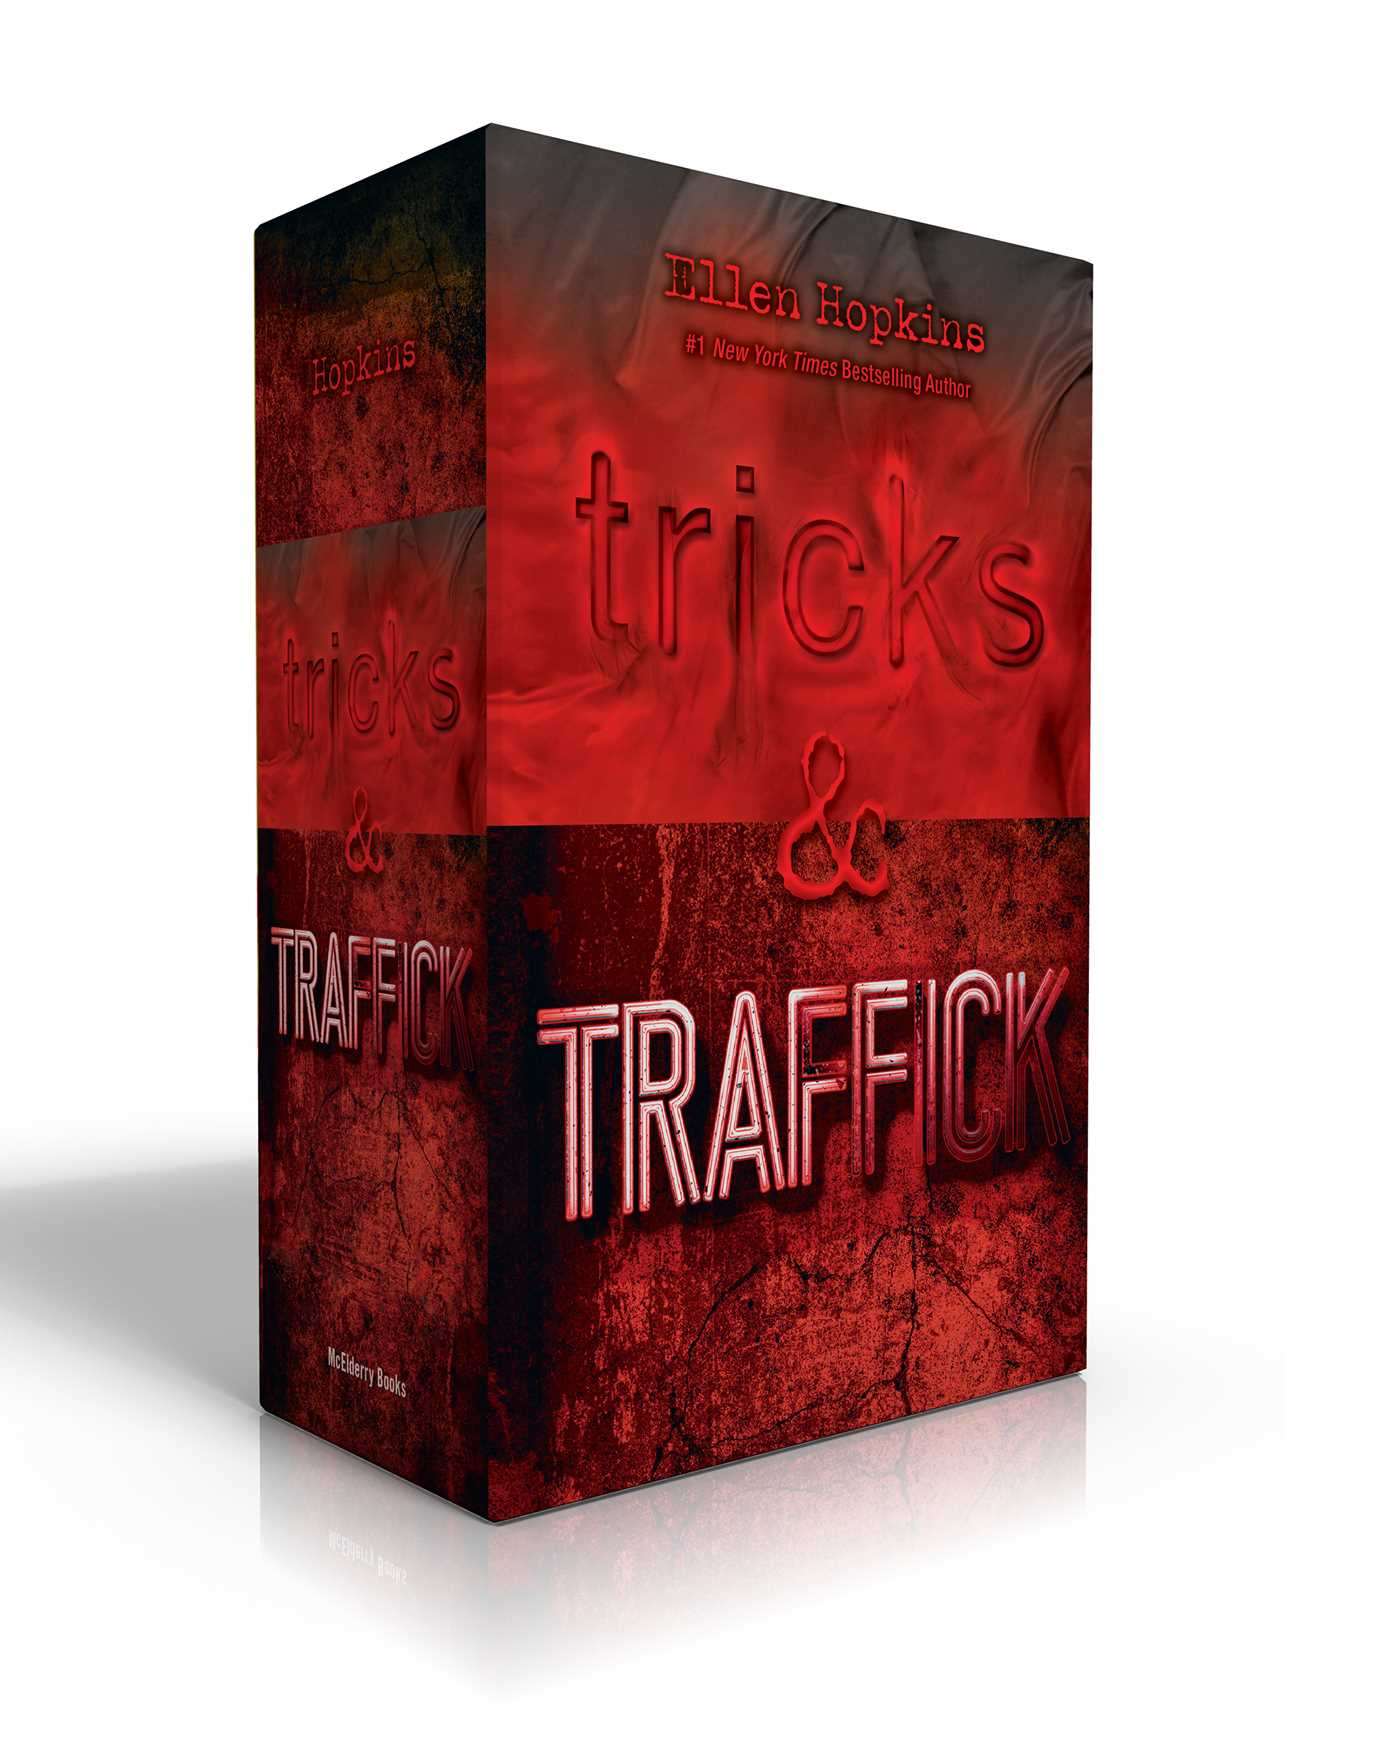 Tricks traffick 9781481498258 hr